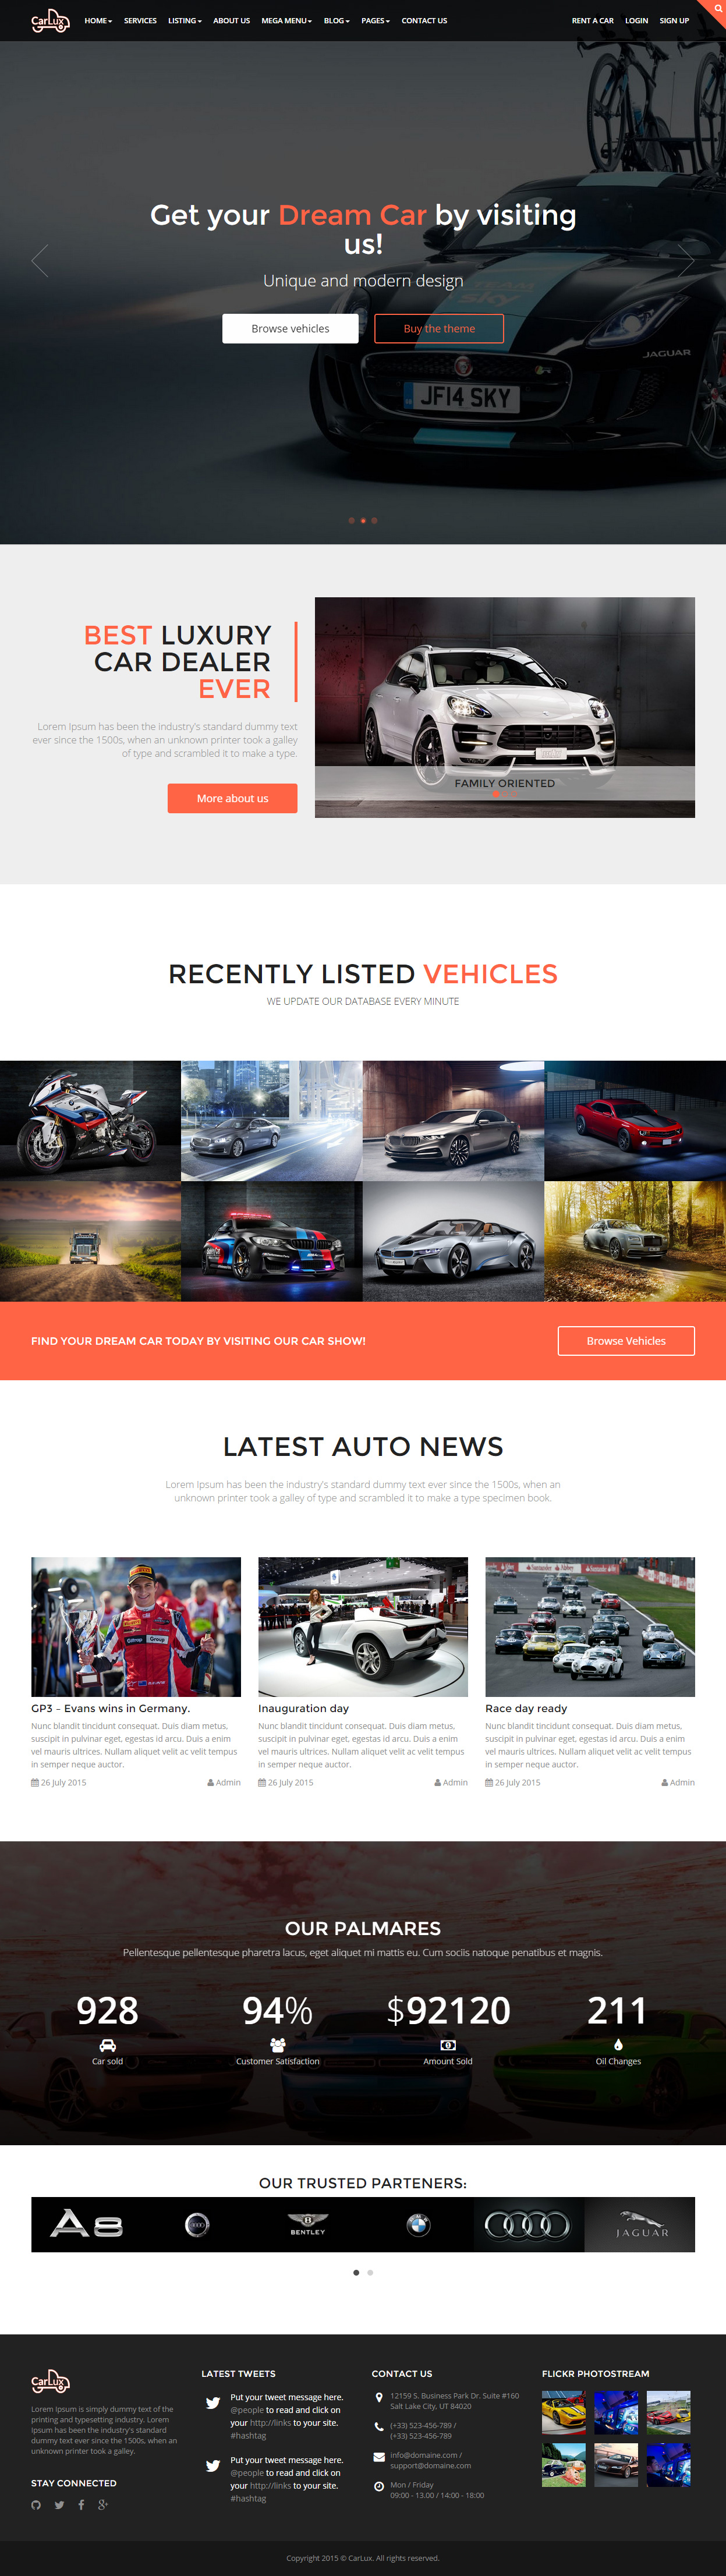 10 best responsive html5 cars and car dealership templates 2015 0